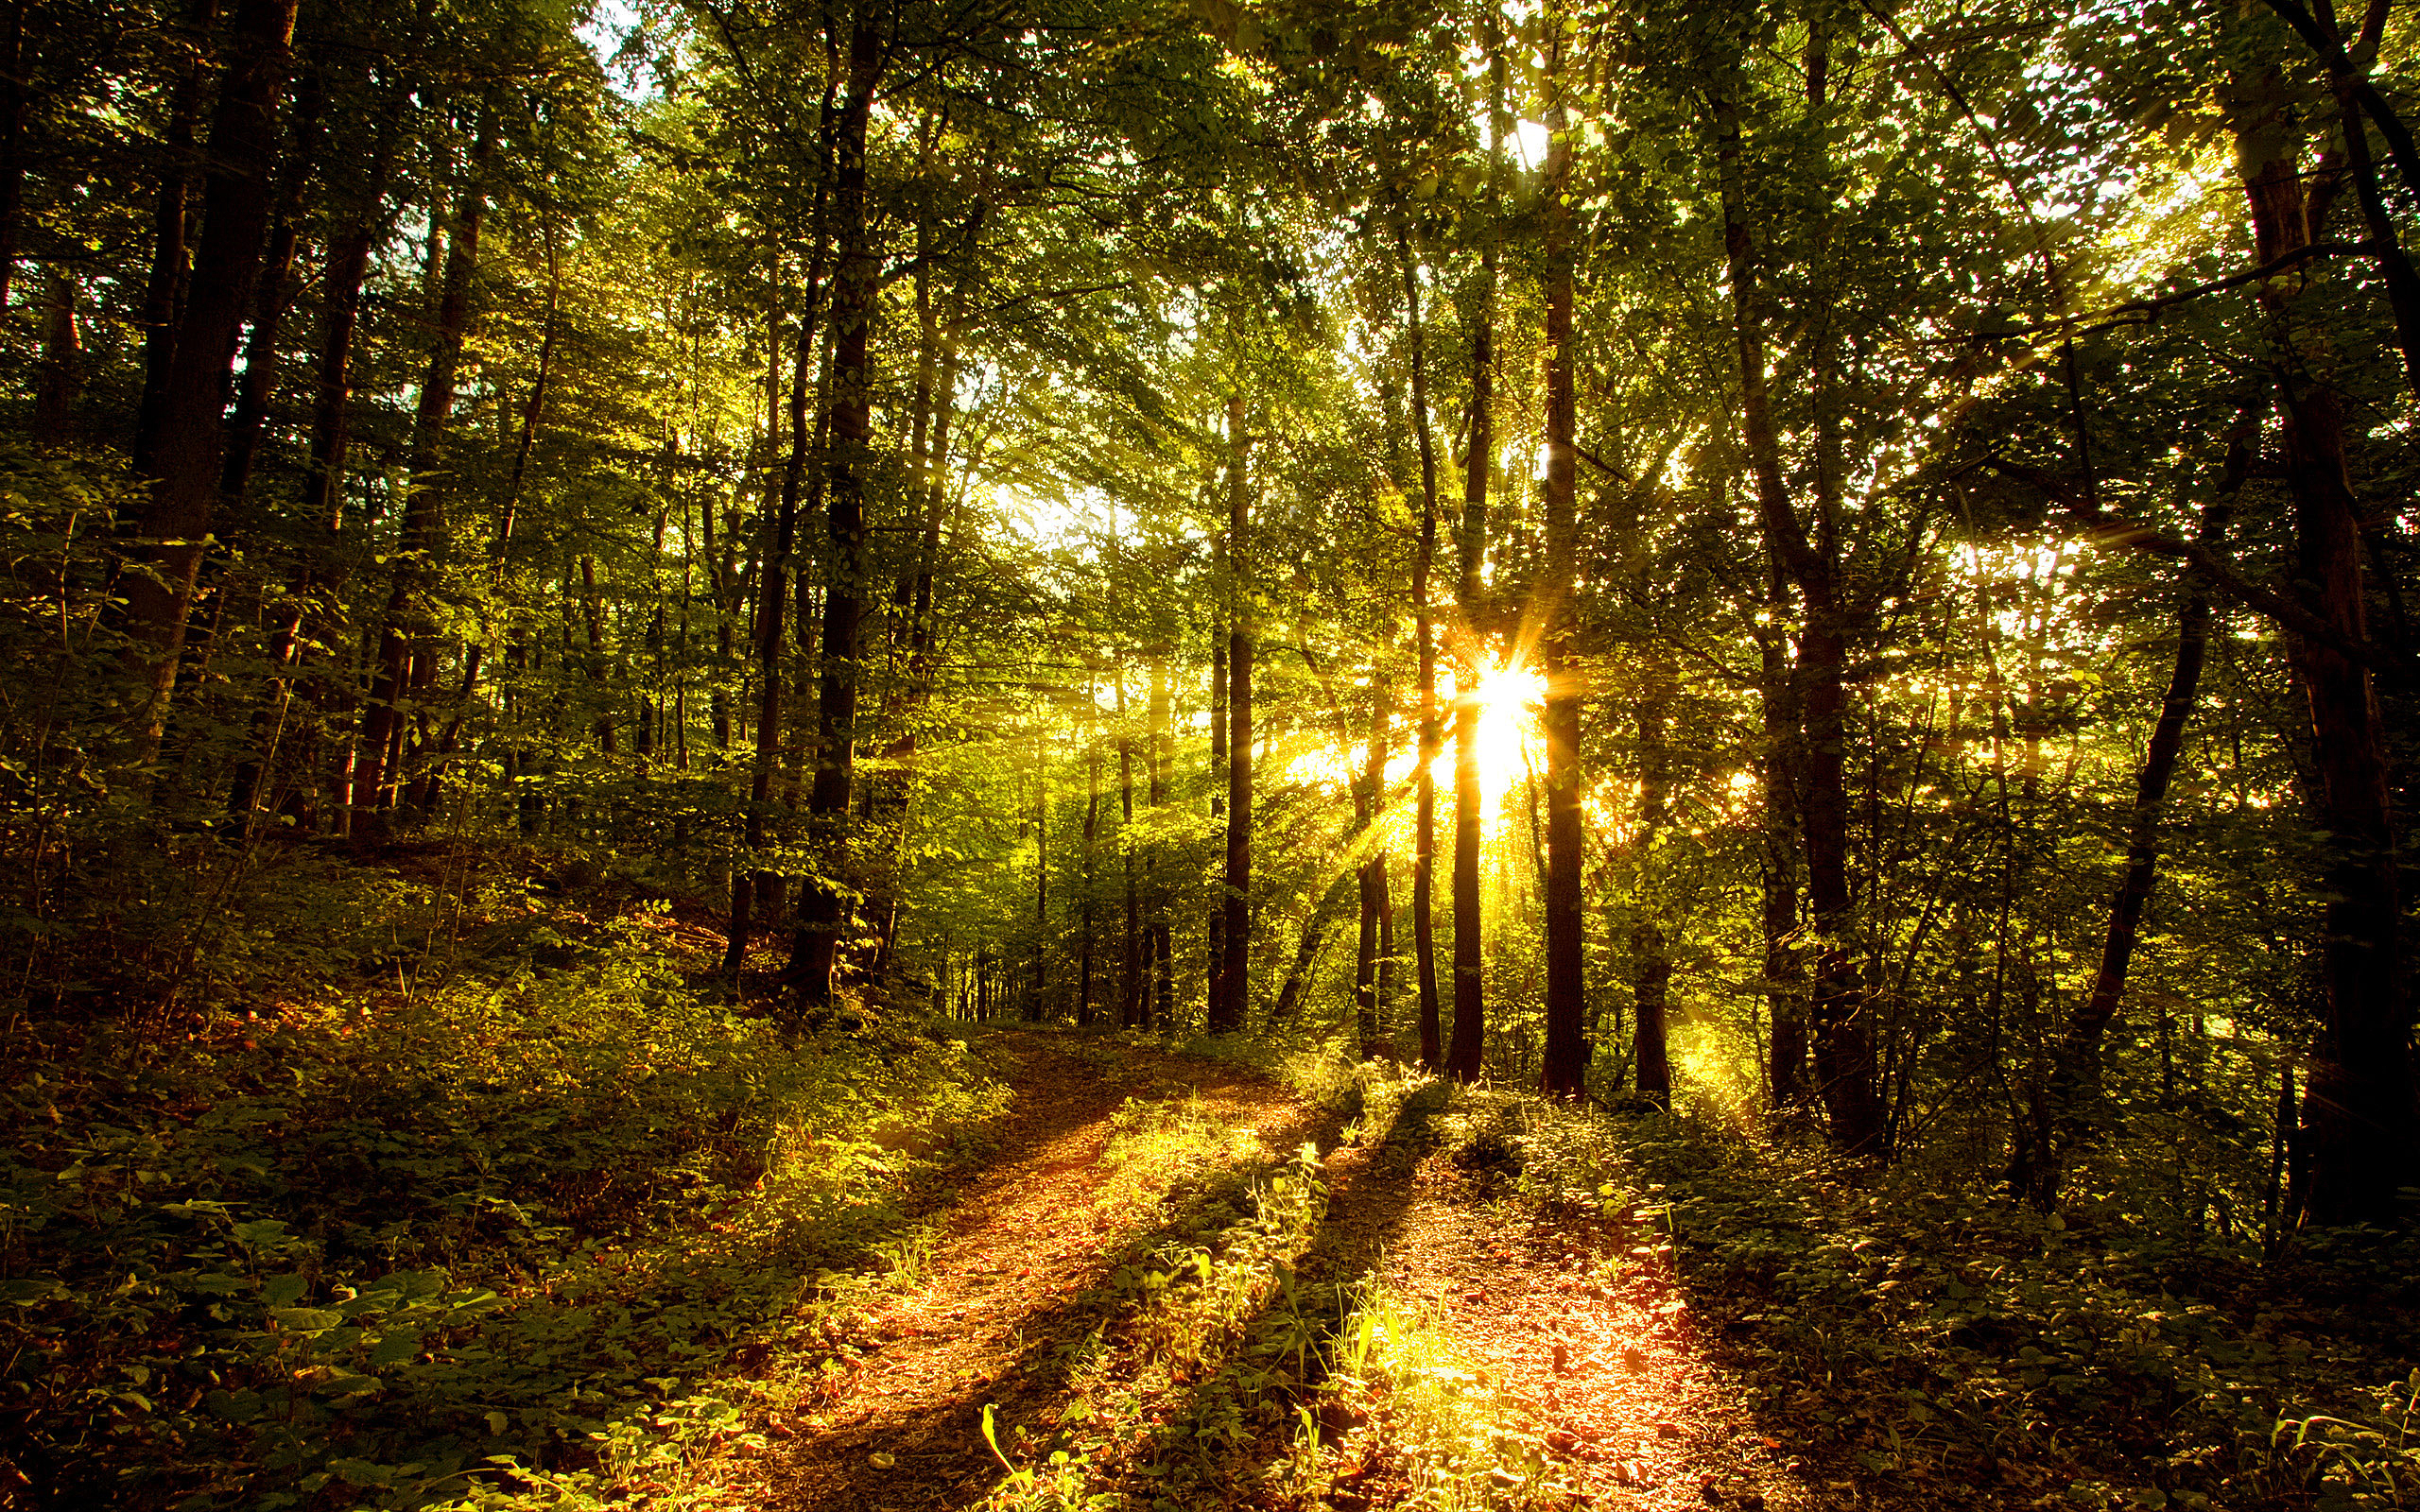 nature Trees forest sunlight HD Wallpaper